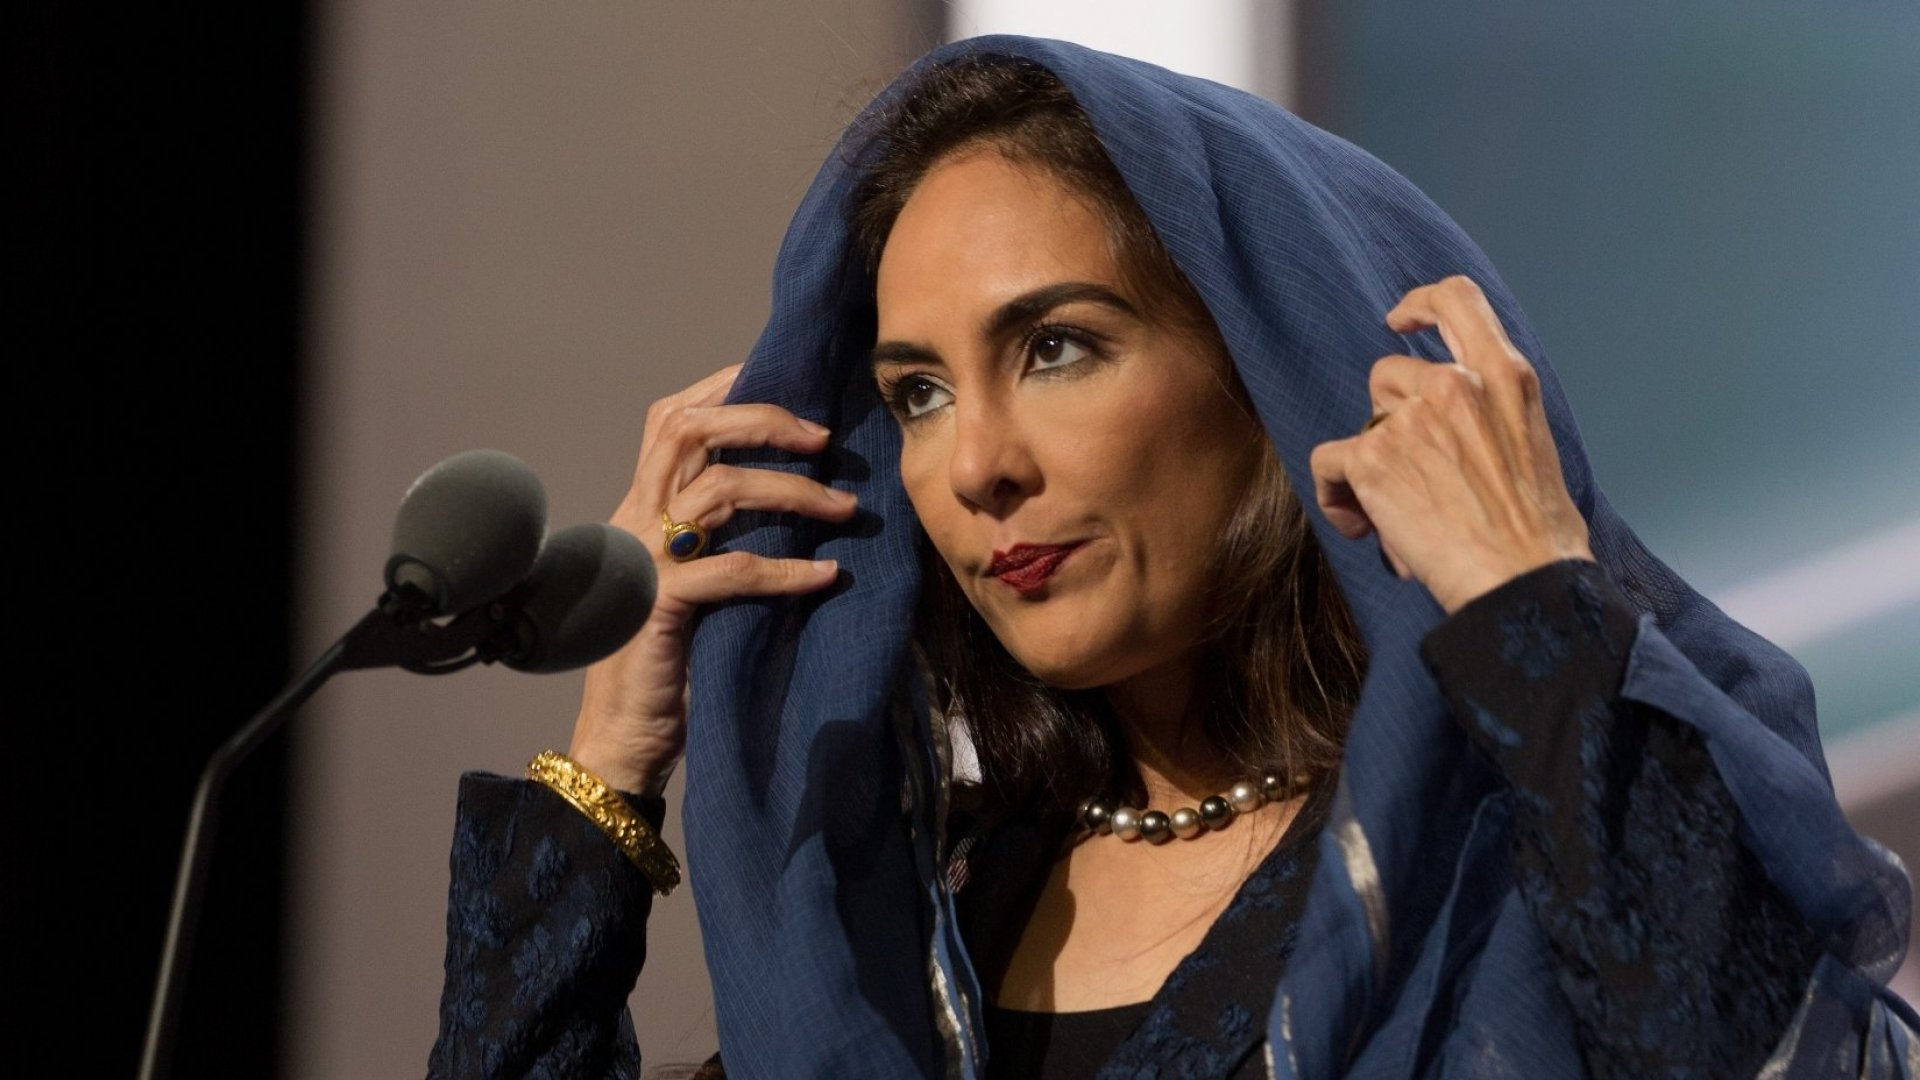 Harmeet Dhillon at the Republican National Convention in 2016